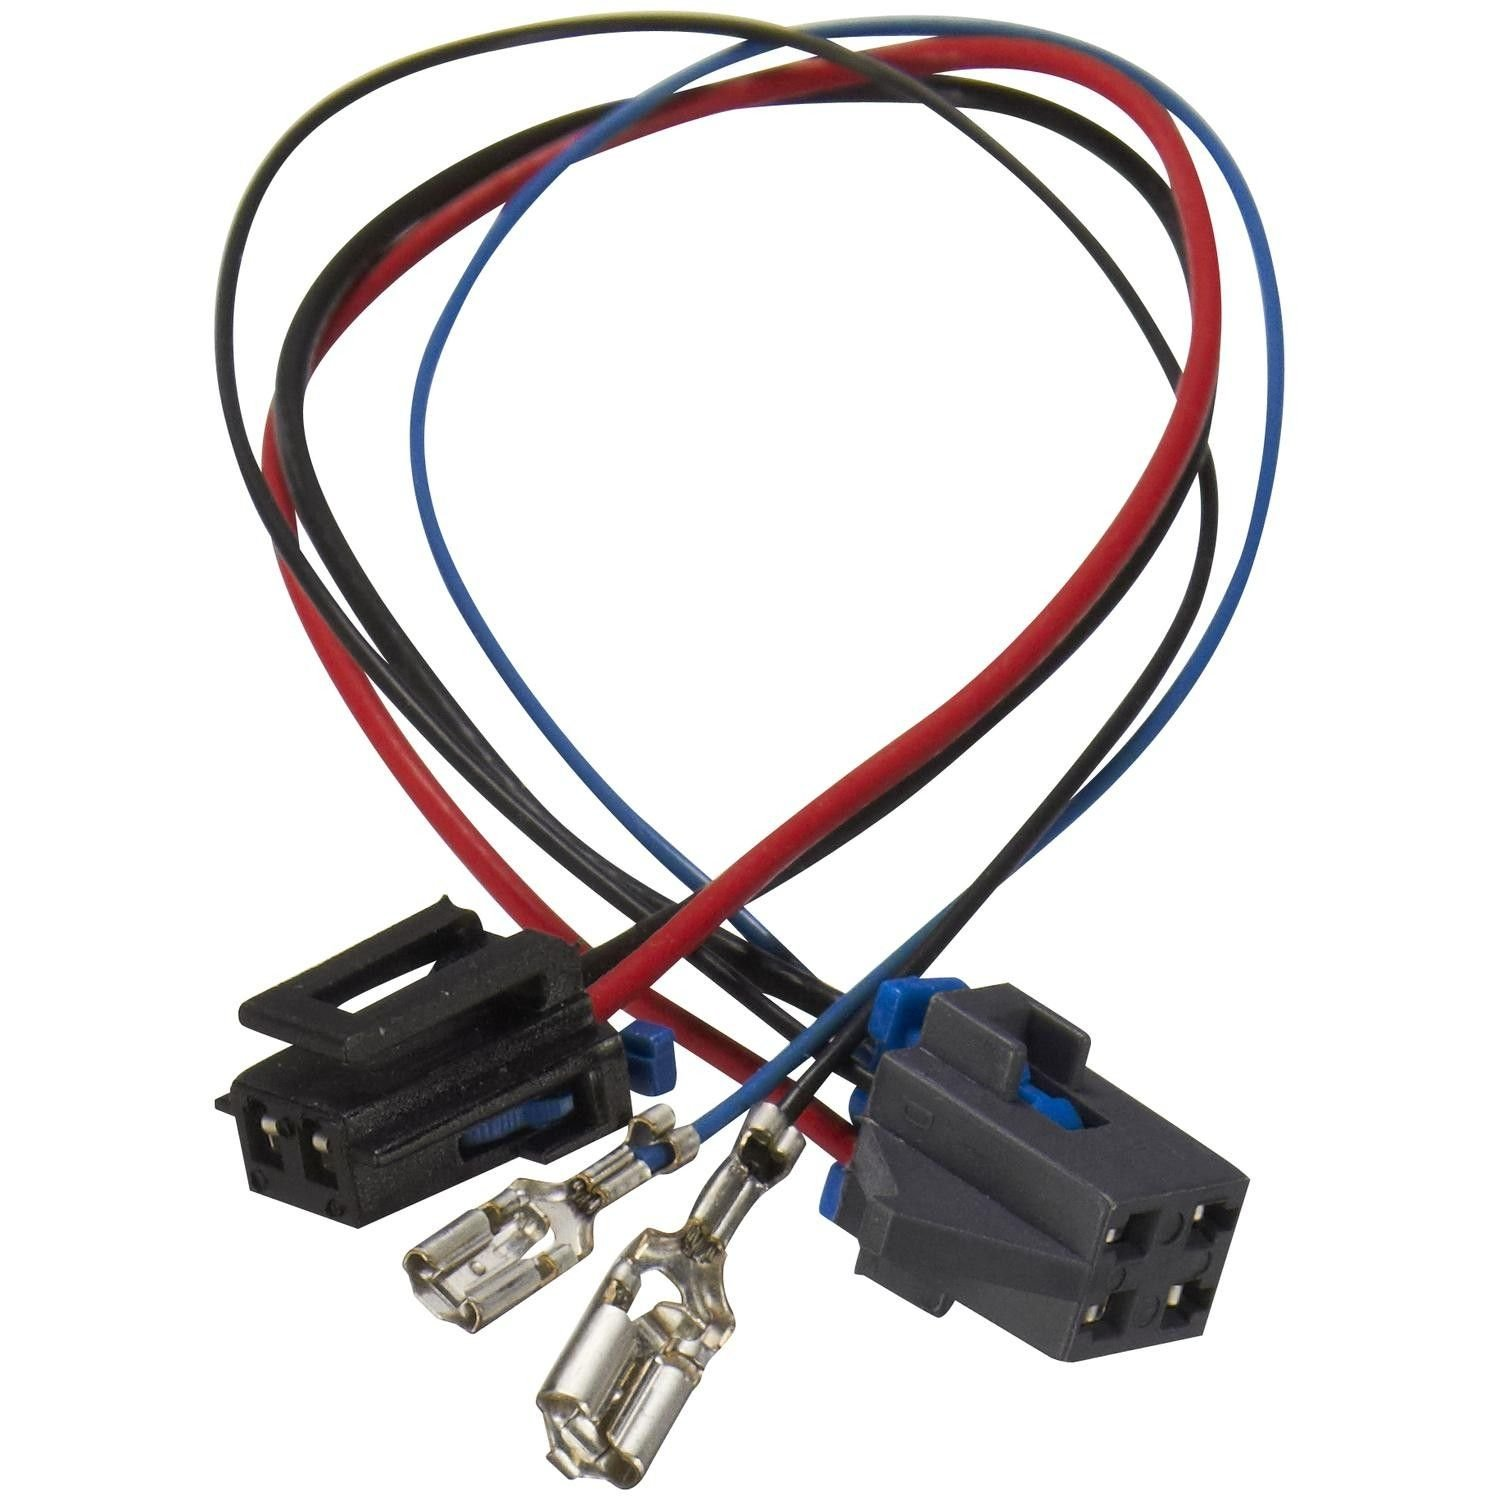 Gmc Safari Fuel Pump Wiring Harness Replacement Airtex Autobest 1987 Spectra Fpw1